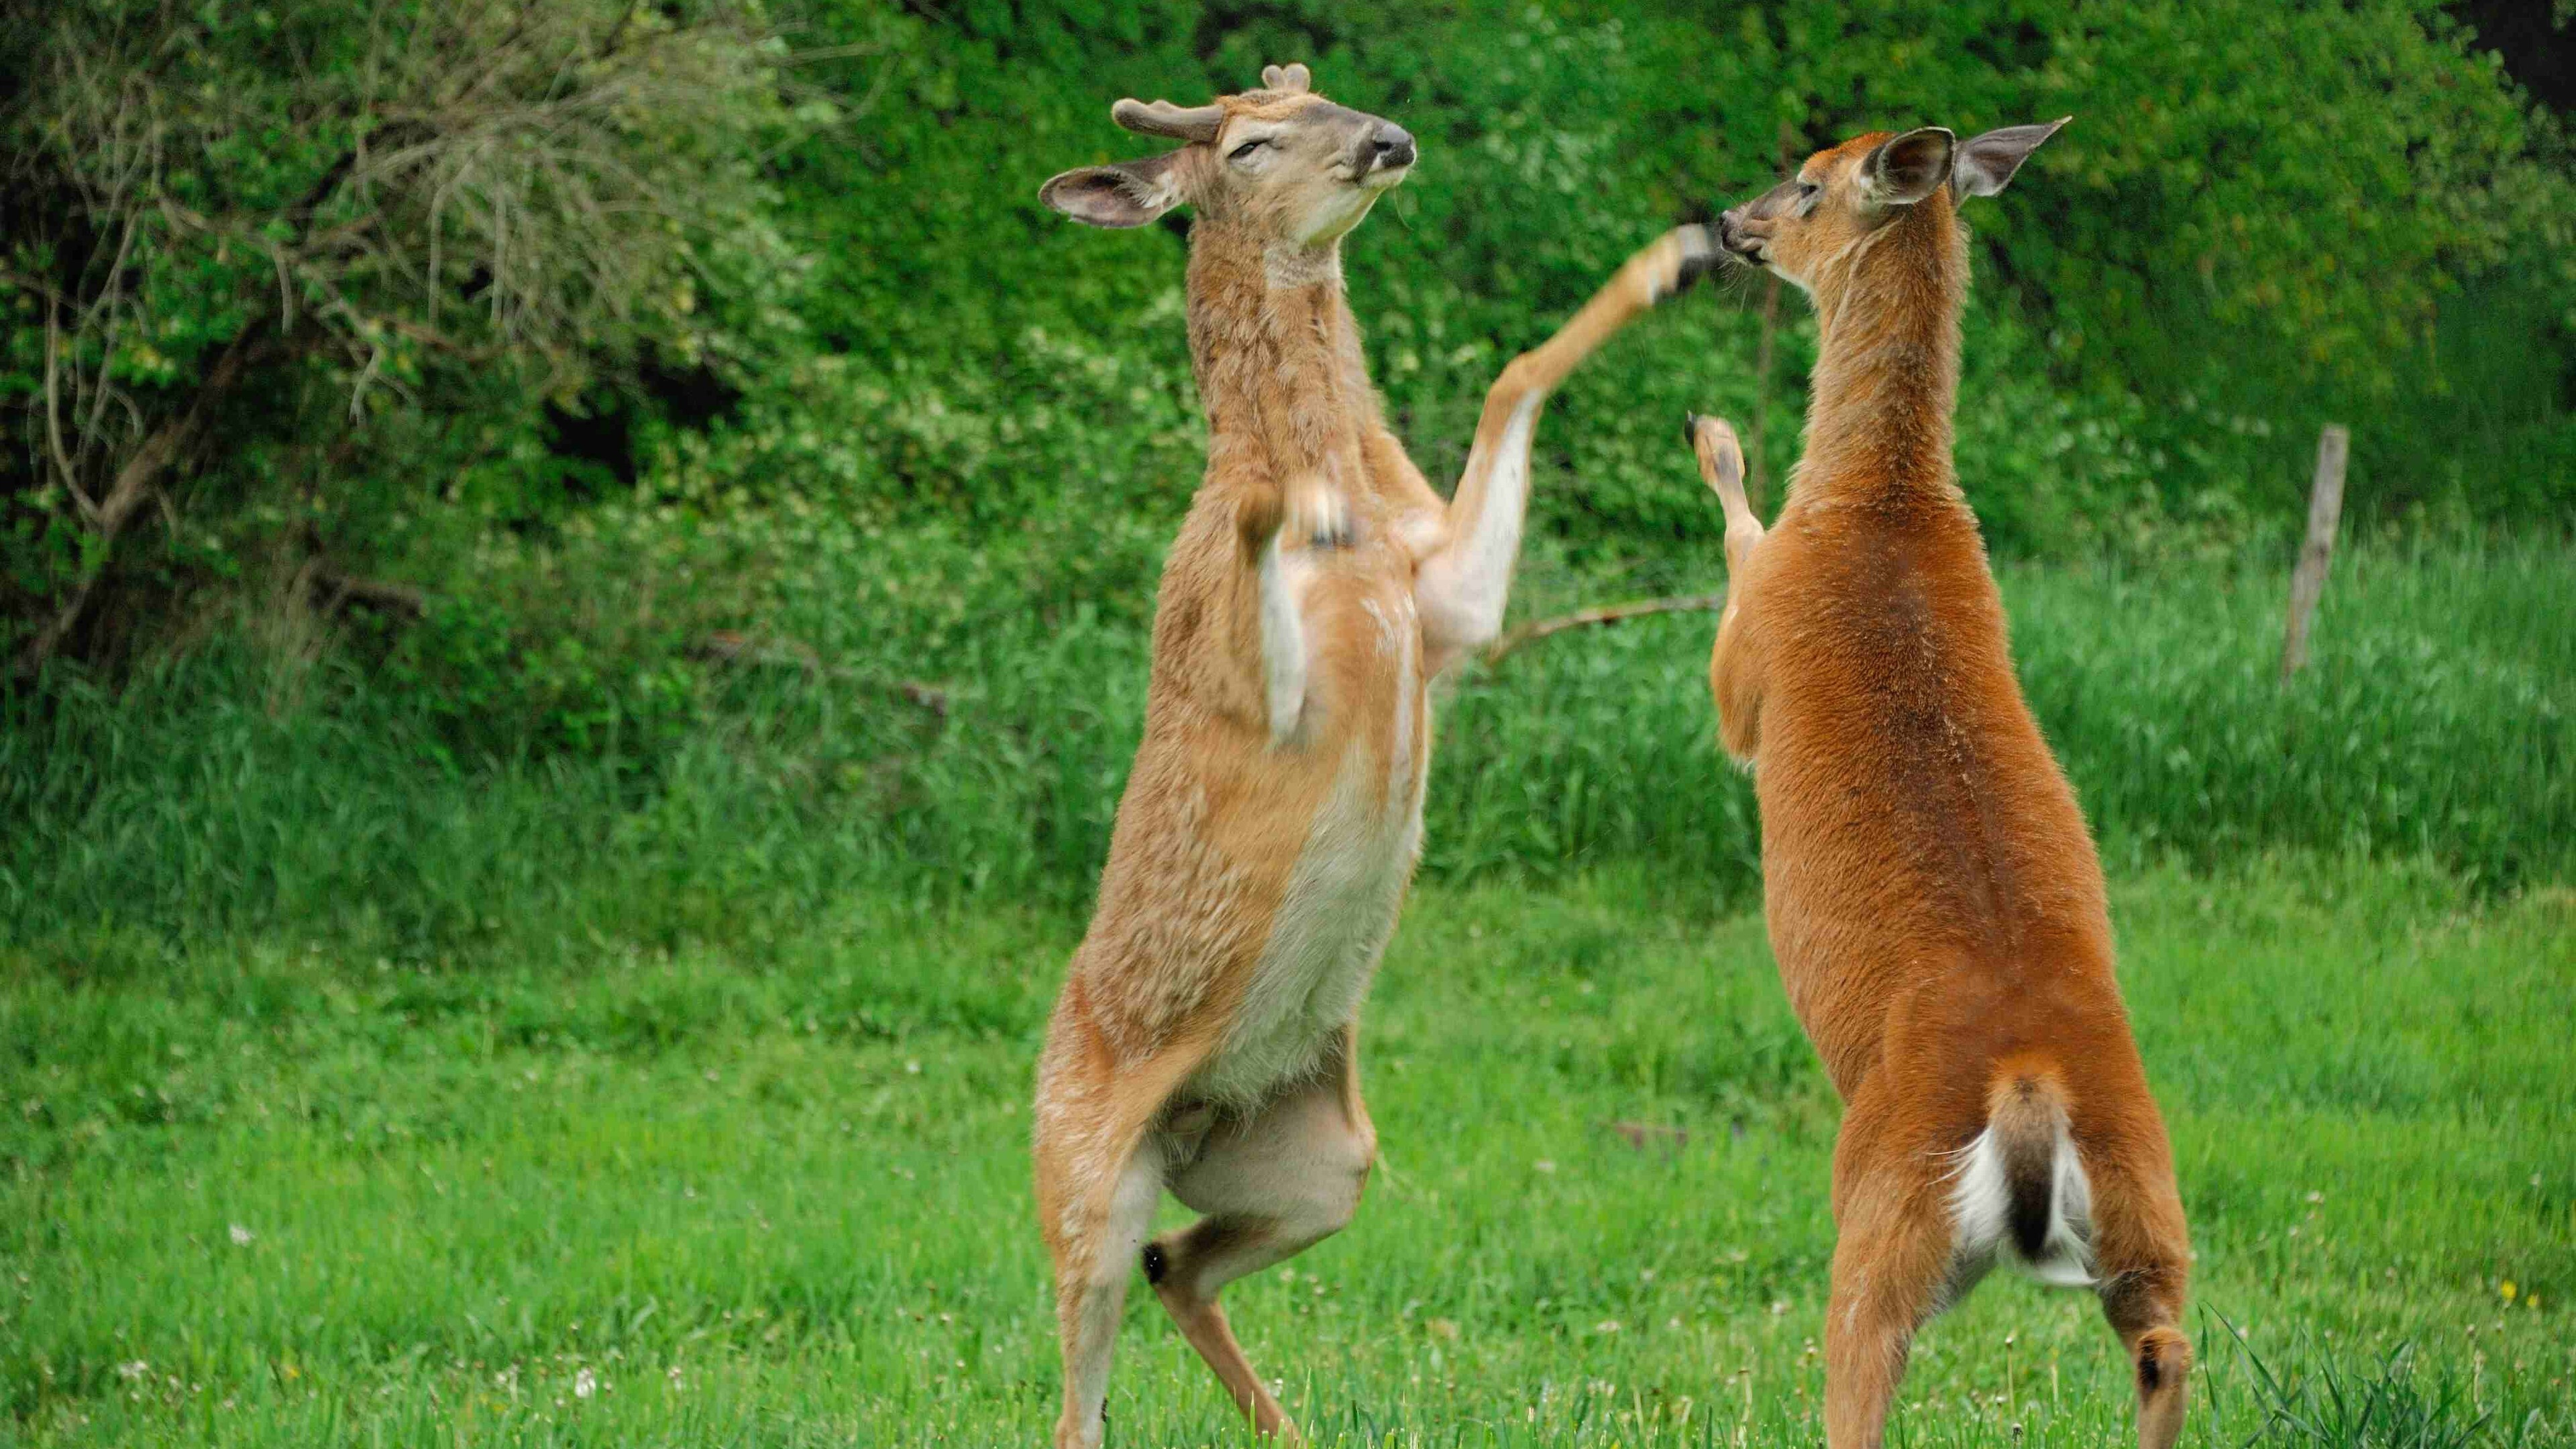 2 Deer Fight In Jungle 4k Wallpaper Hd Wallpapers